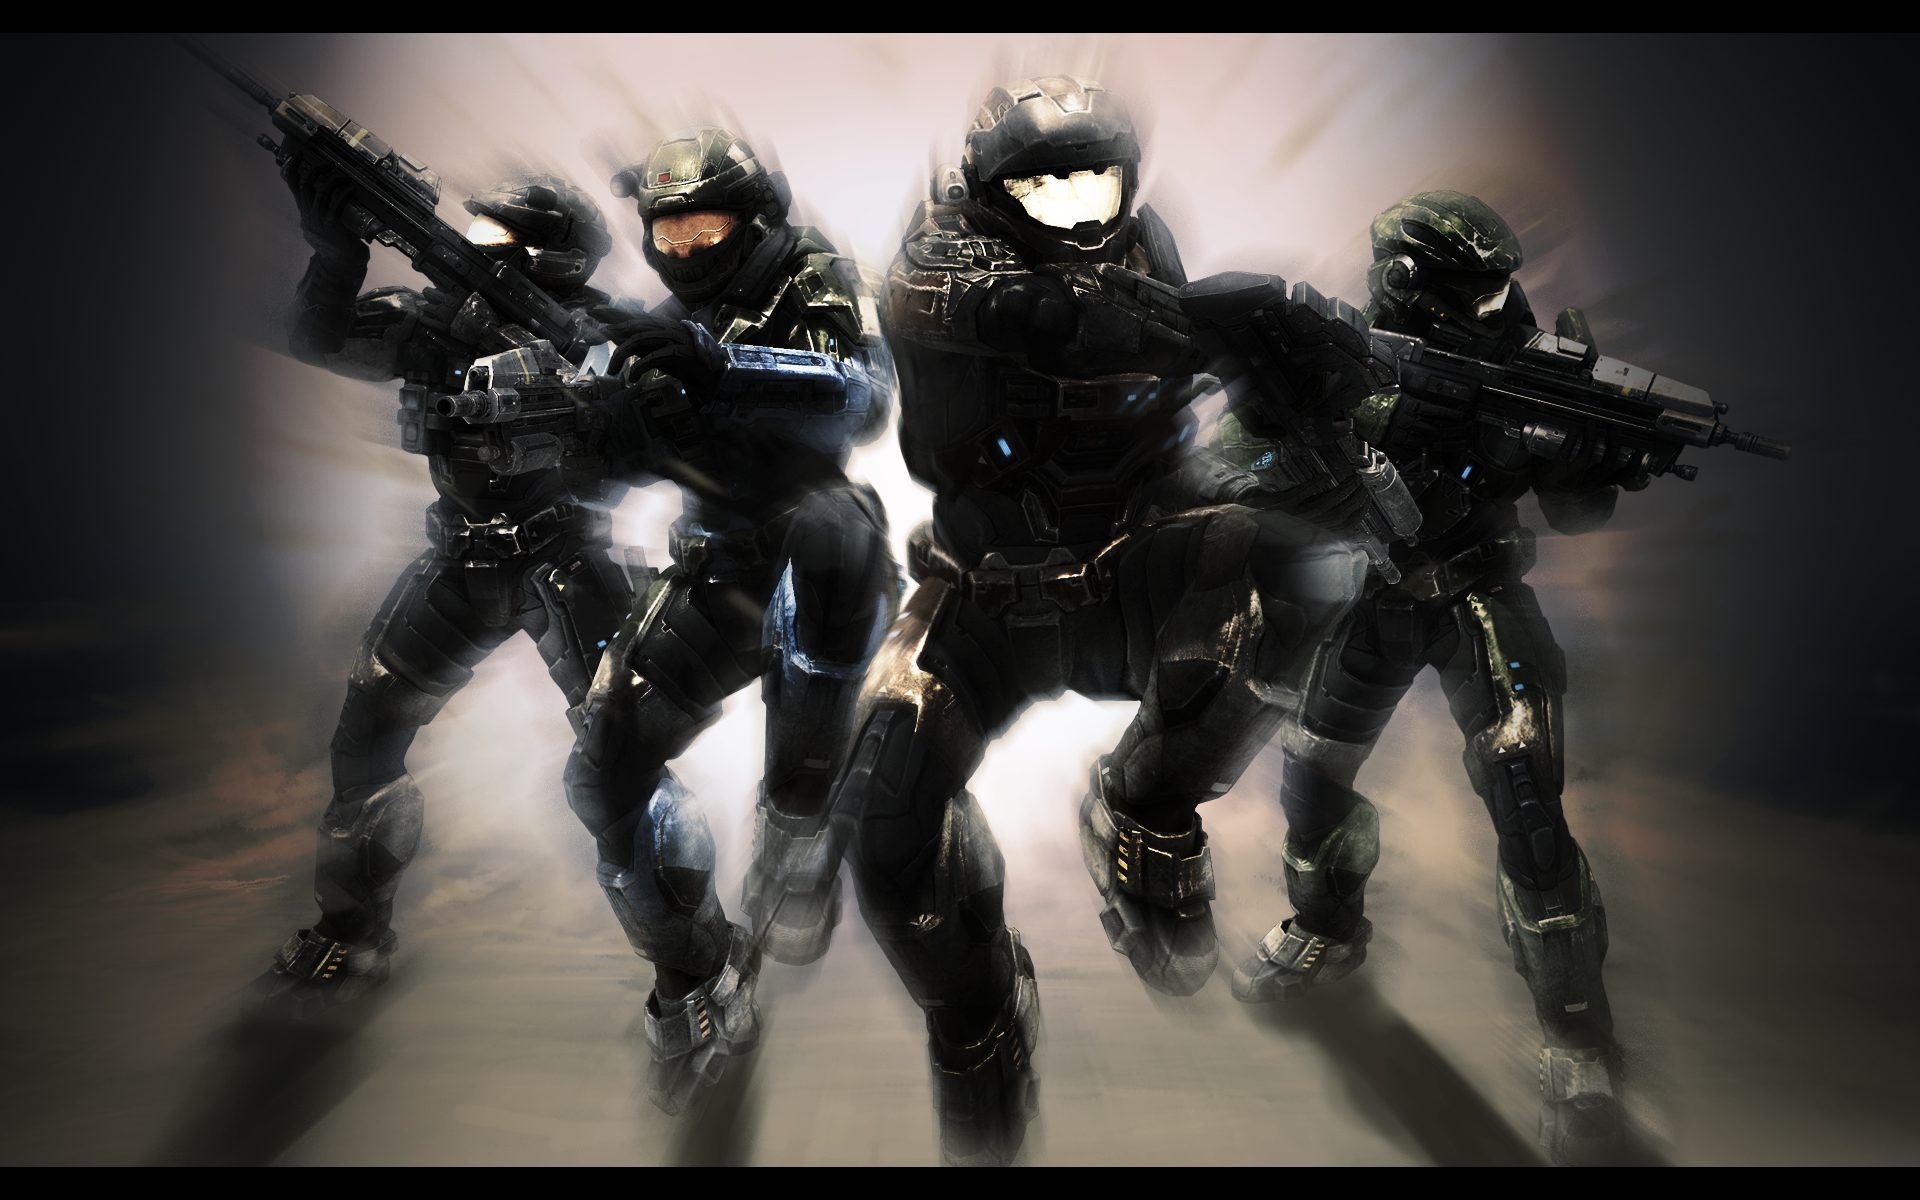 download Halo Reach Multiplayer Wallpaper [1920x1200] for 1920x1200